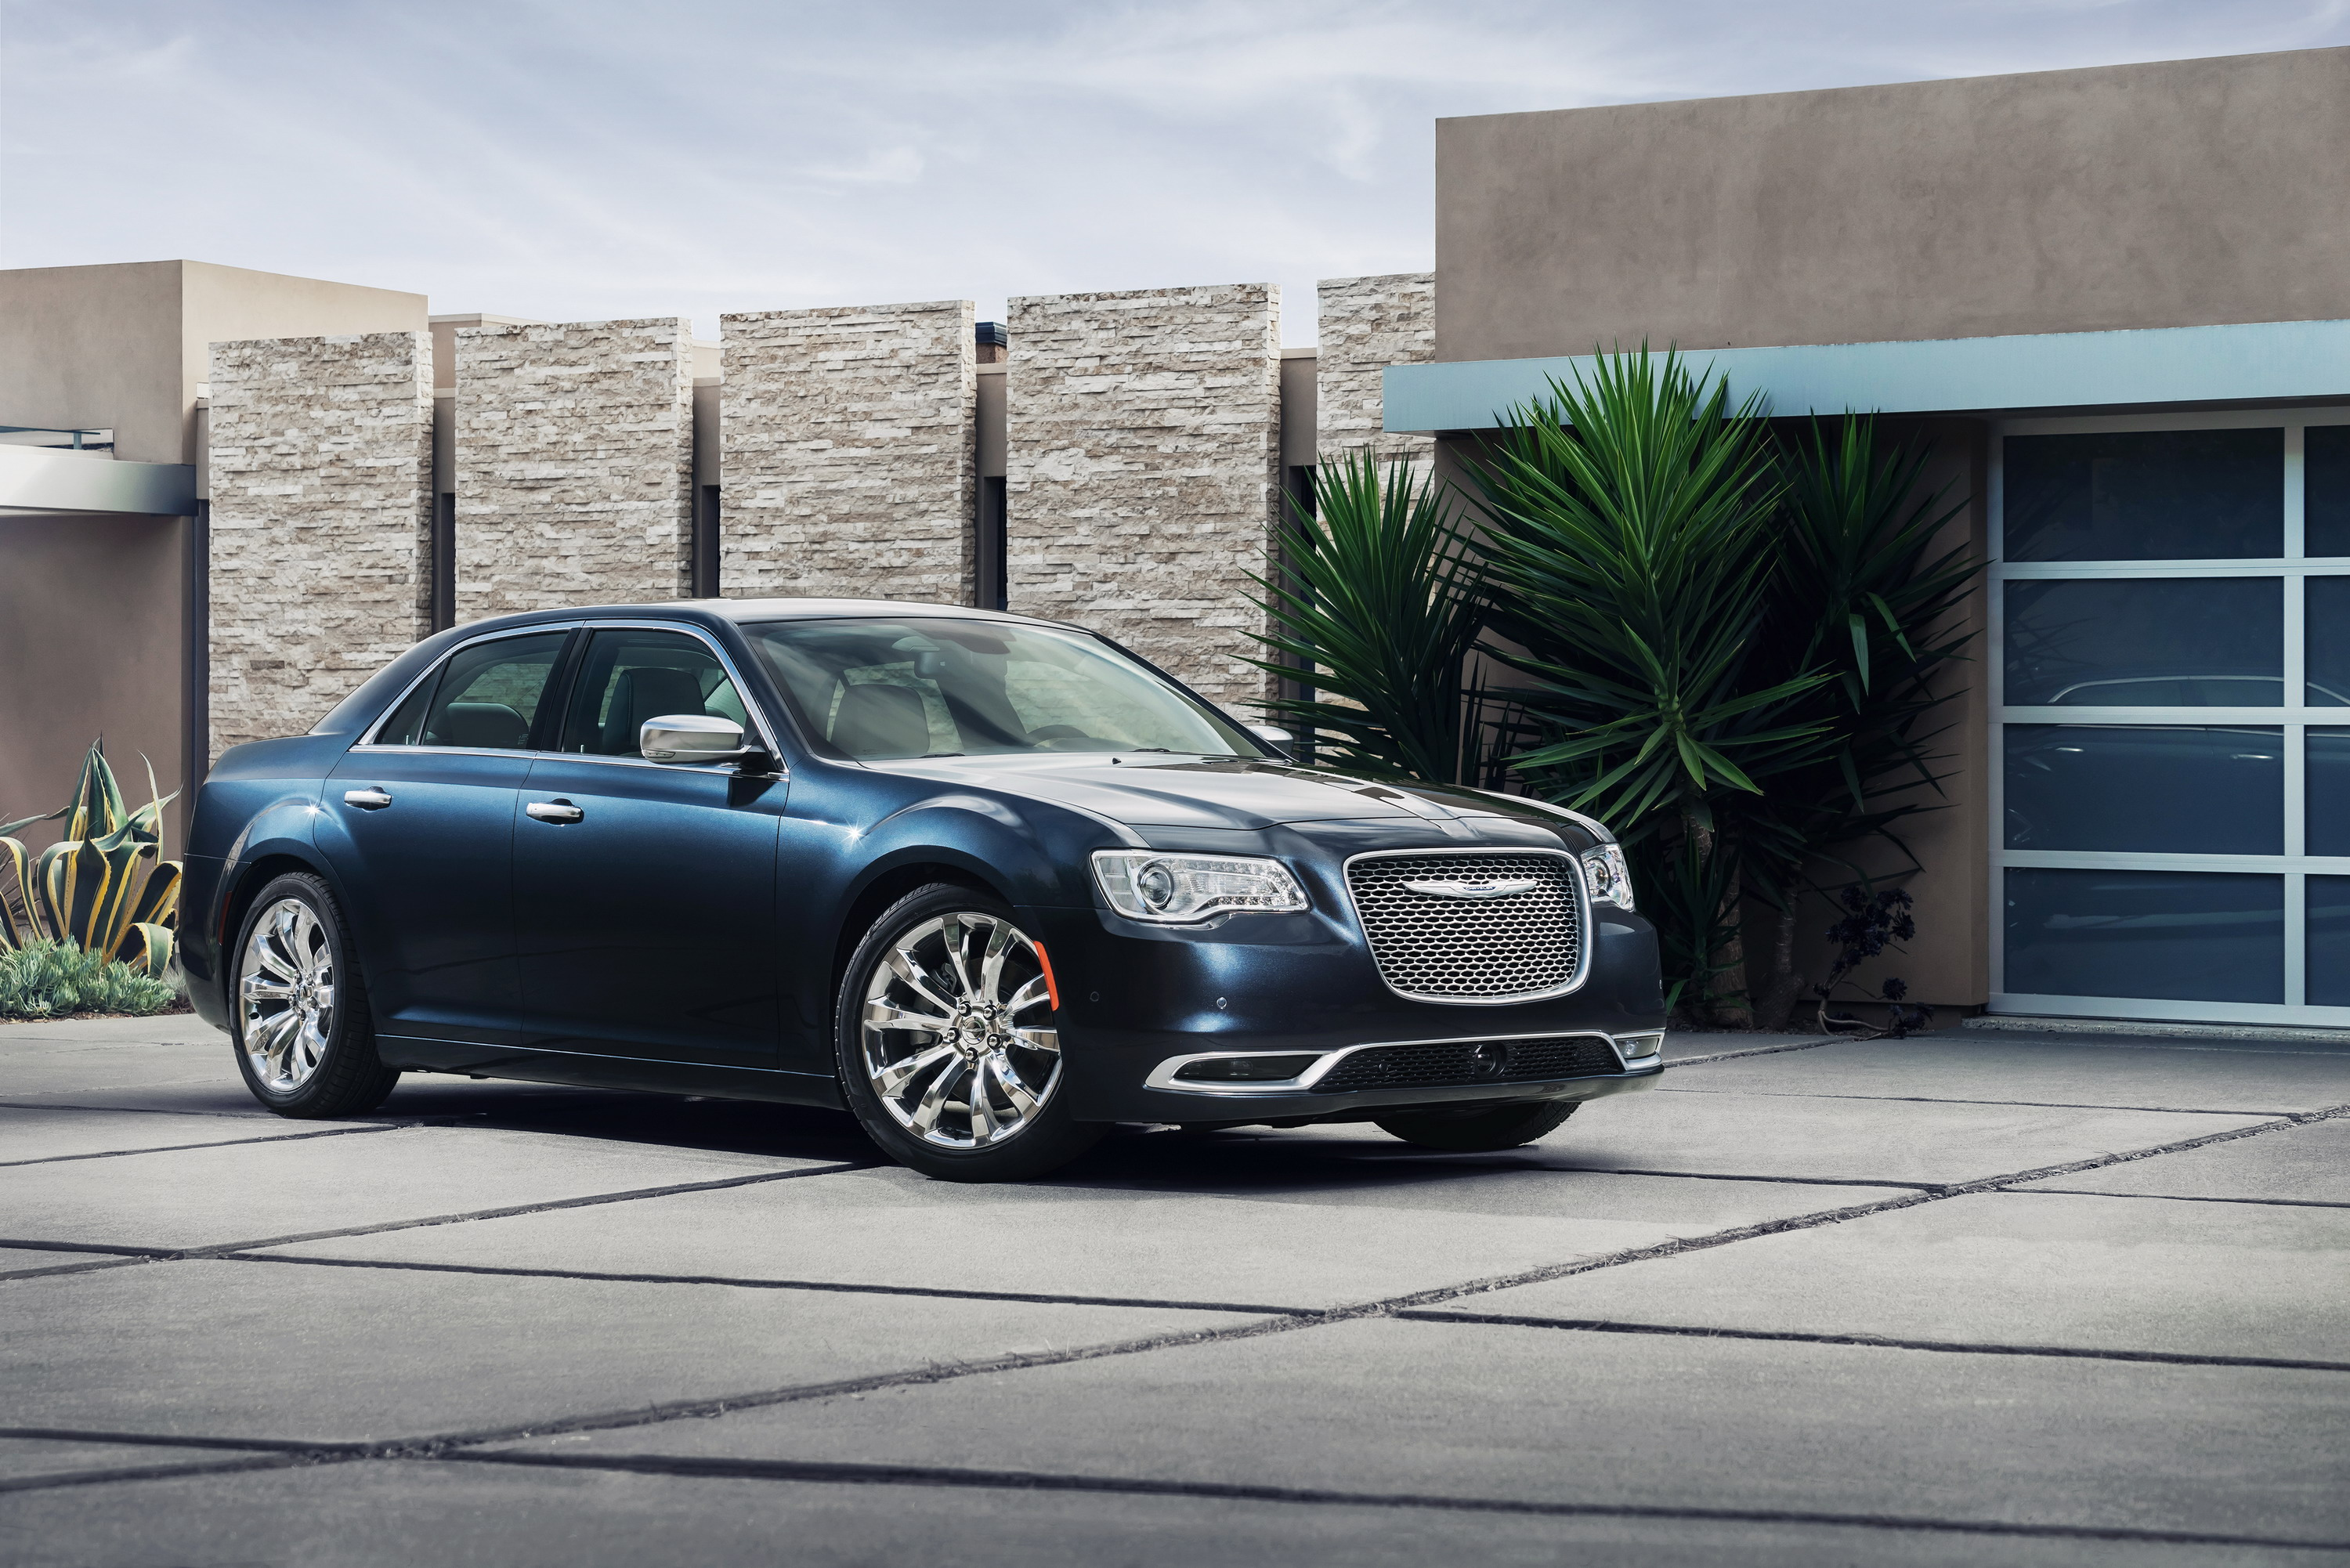 Australia Could Get Its Very Own Hellcat Version The Chrysler 300